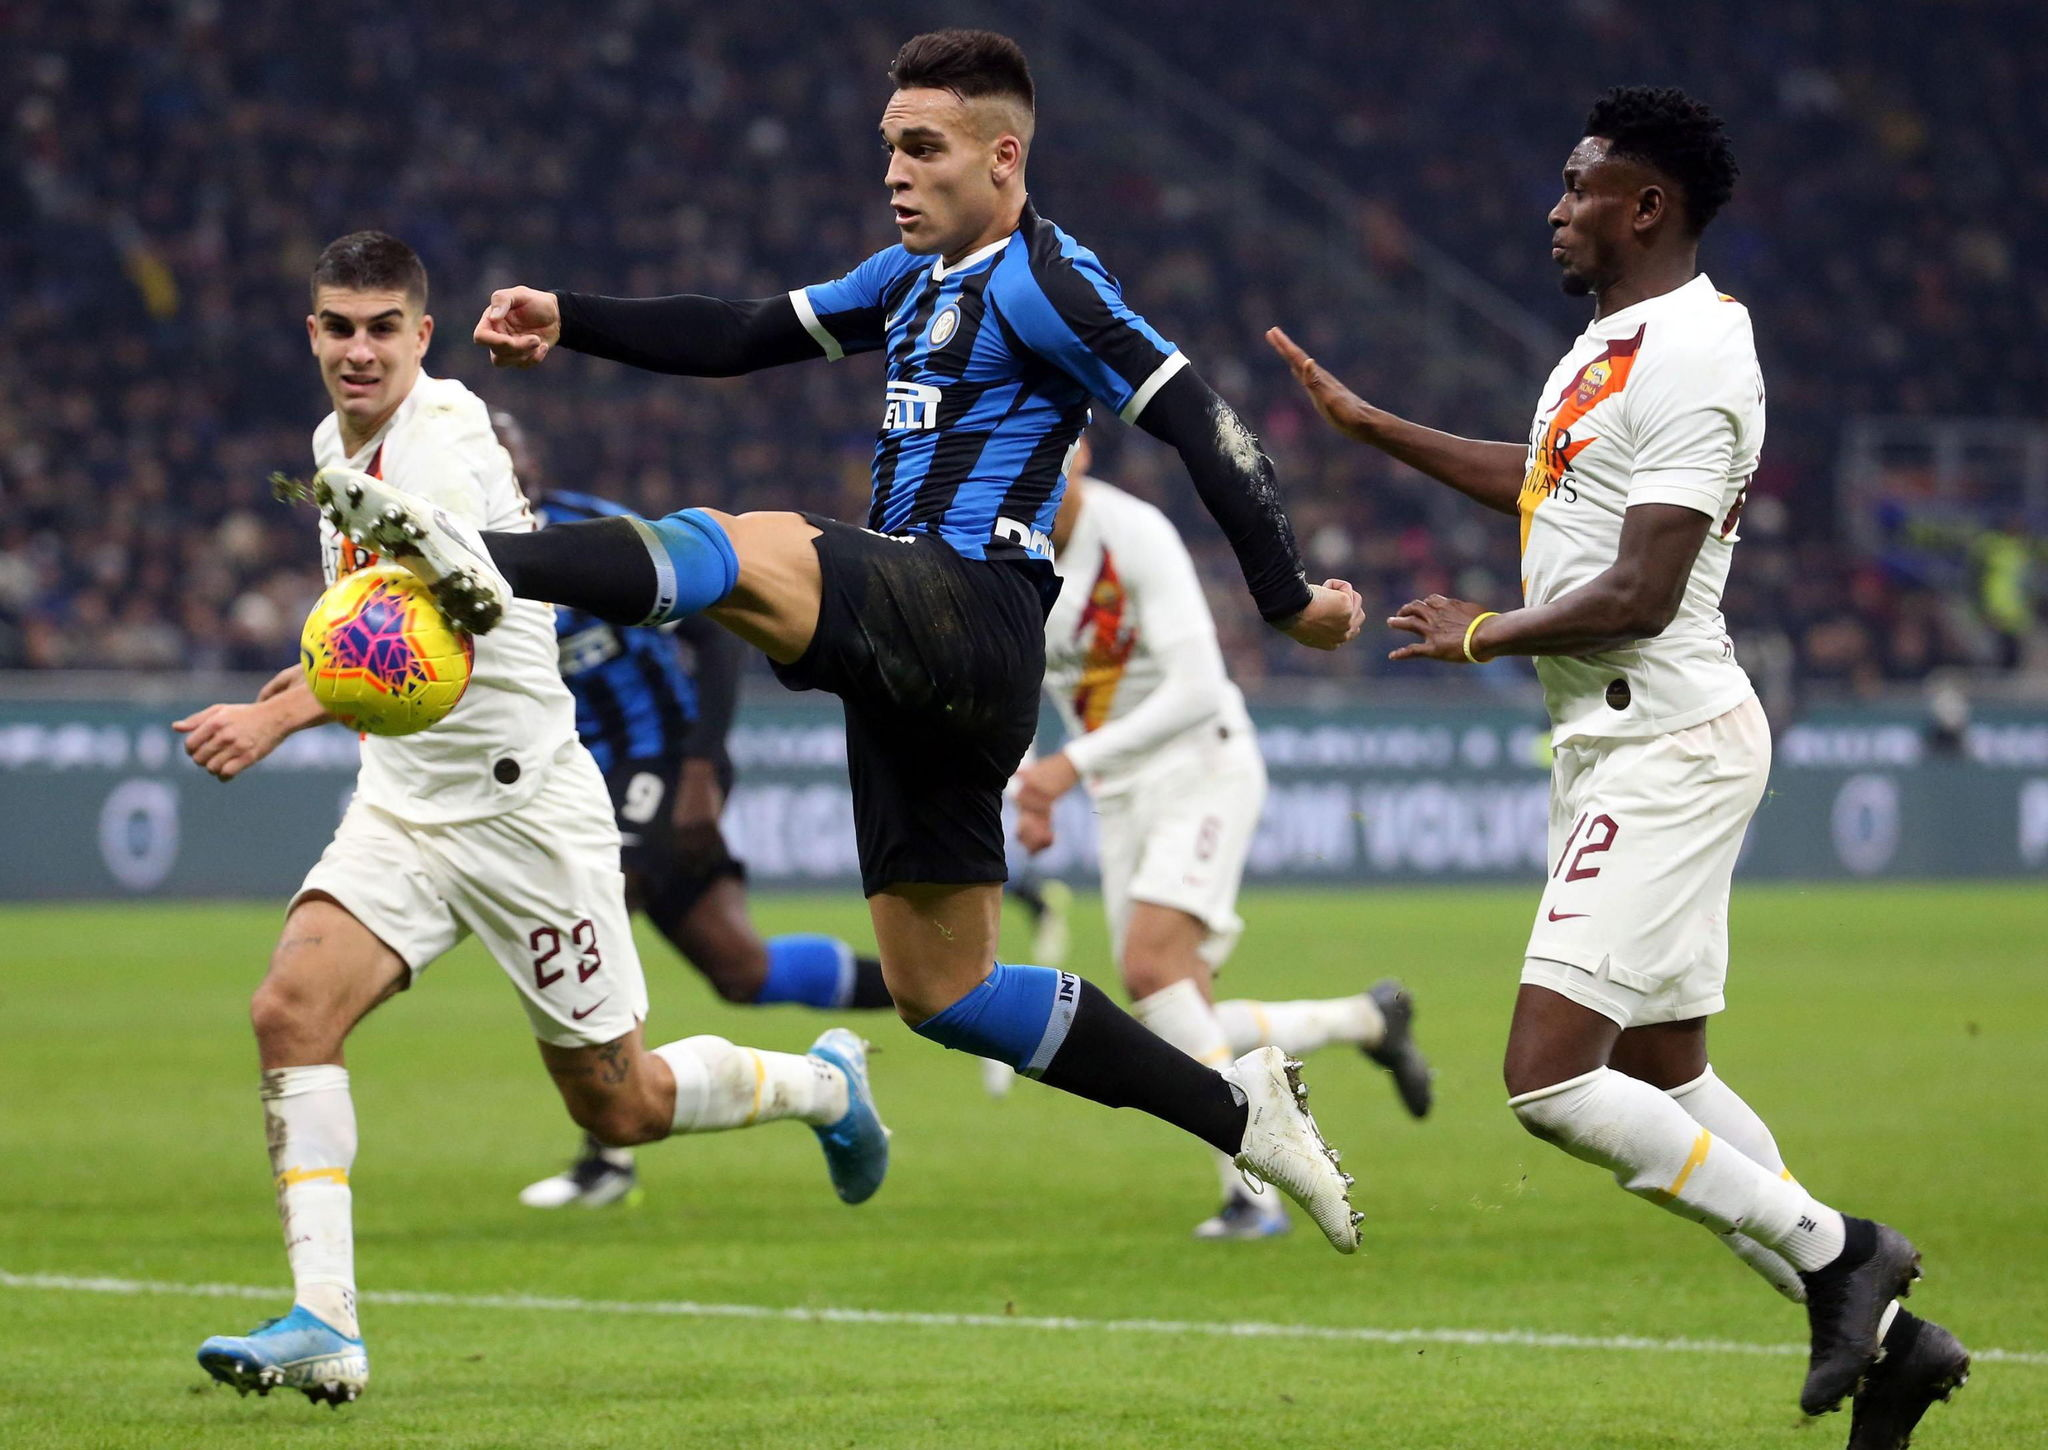 Milan (Italy), 06/12/2019.- Inters Lautaro Martinez (C) in action during the Italian Serie A soccer match Inter FC vs AS <HIT>Roma</HIT> at the Giuseppe Meazza stadium in Milan, Italy, 06 December 2019. (Italia) EFE/EPA/MATTEO BAZZI